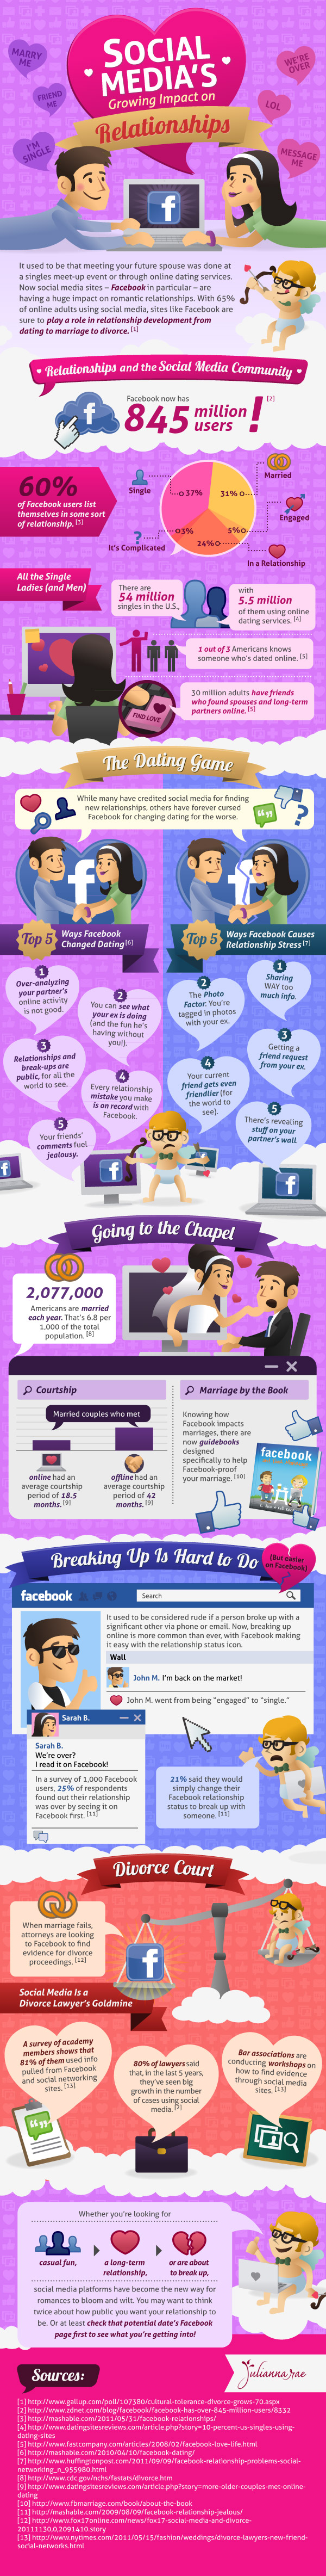 social media dating impact Social Medias Growing Impact on Relationships [Infographic]